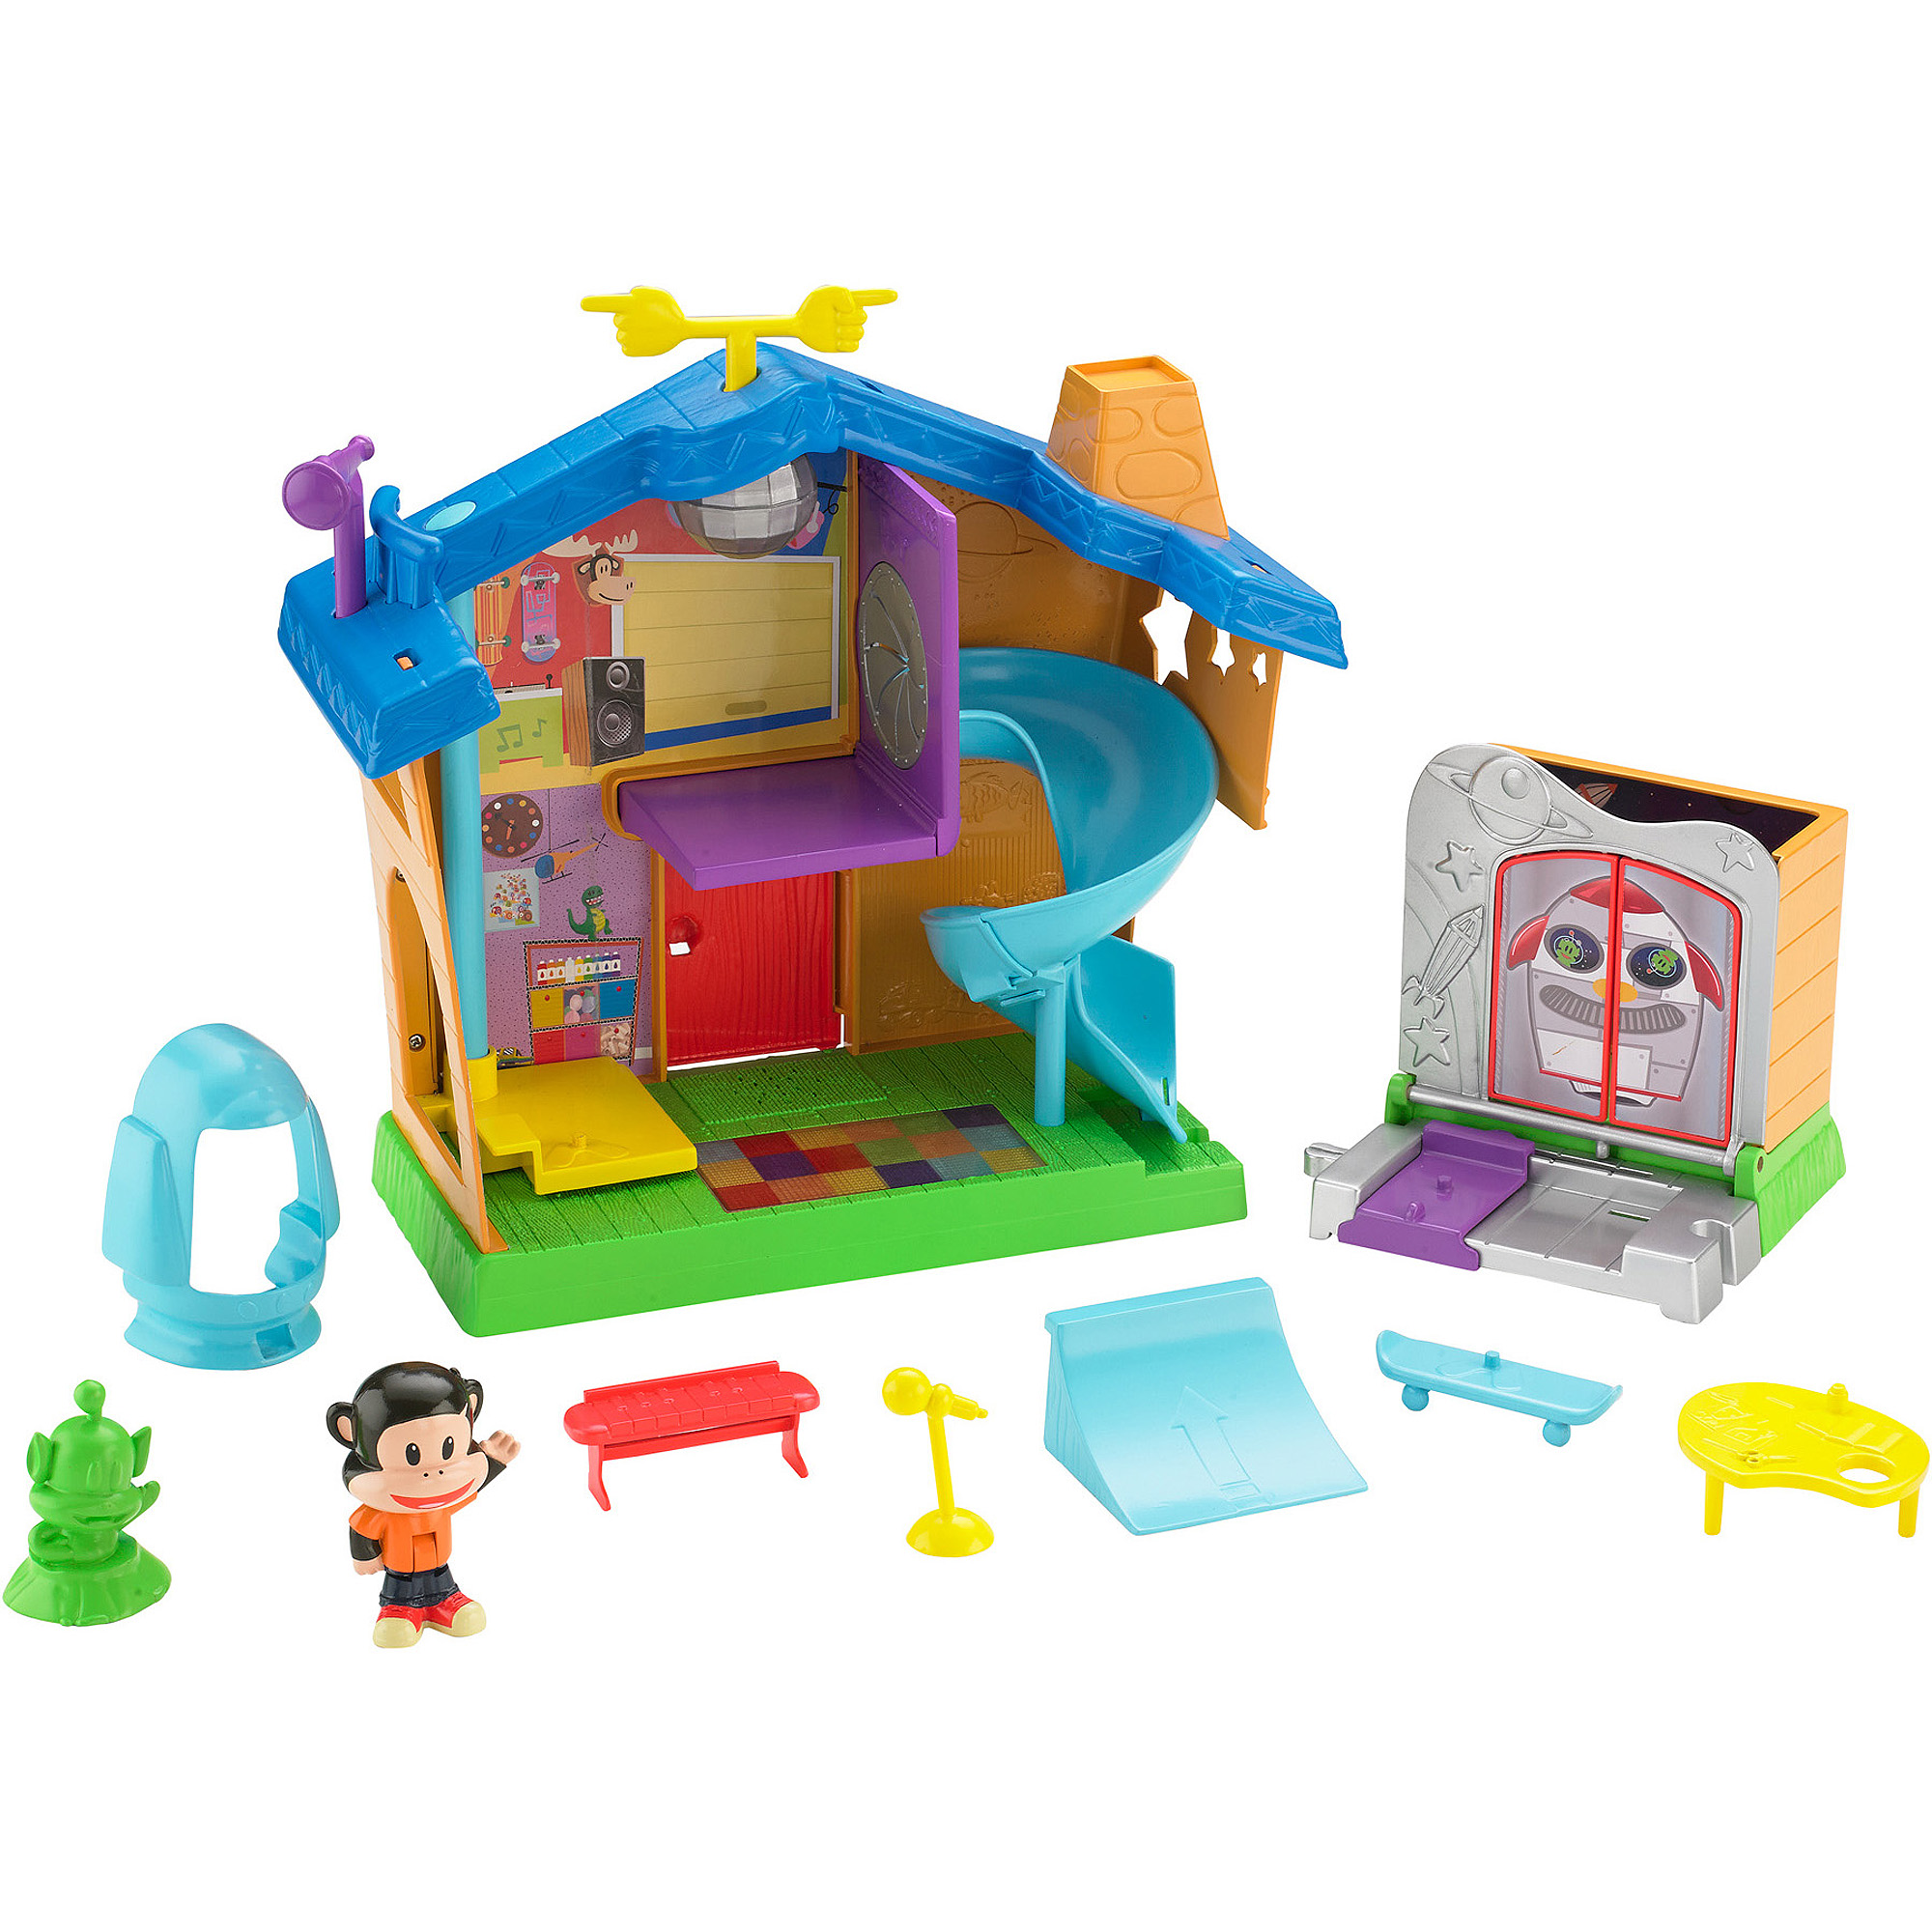 Fisher-Price Julius Jr. Playhouse Playset